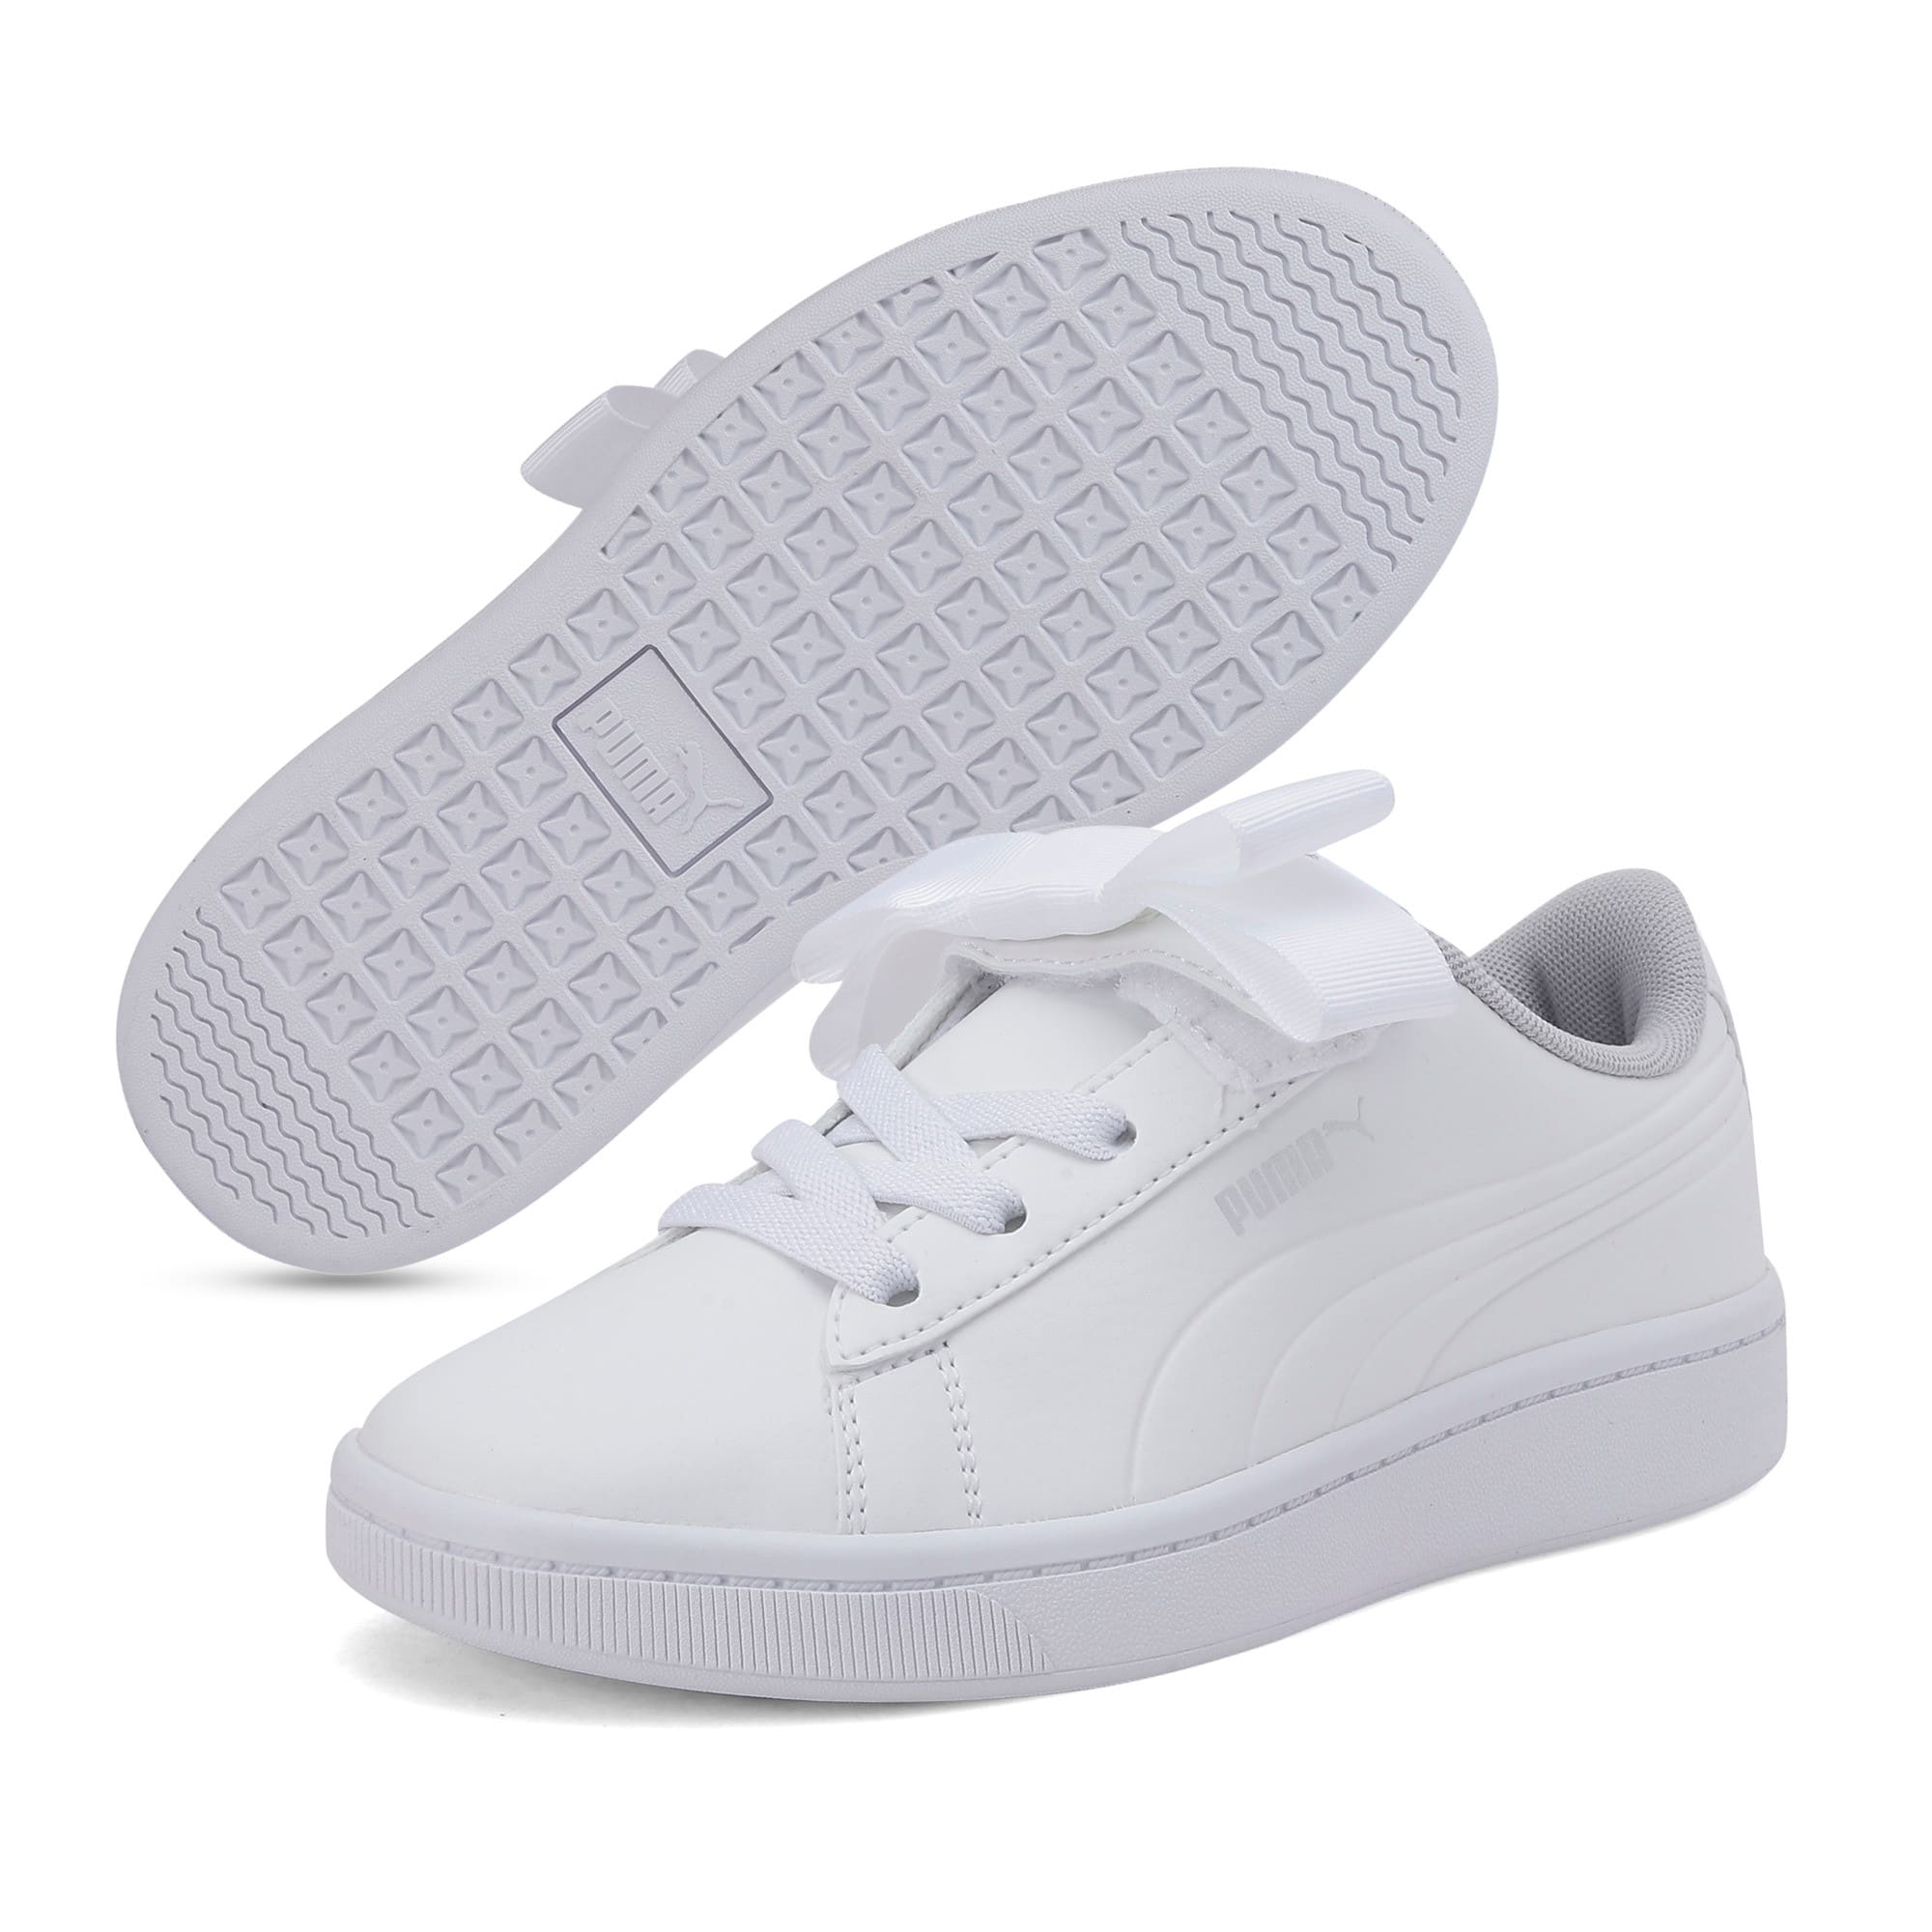 Thumbnail 2 of Vikky v2 Ribbon AC Kids' Trainers, White-Silver-Gray Violet, medium-IND